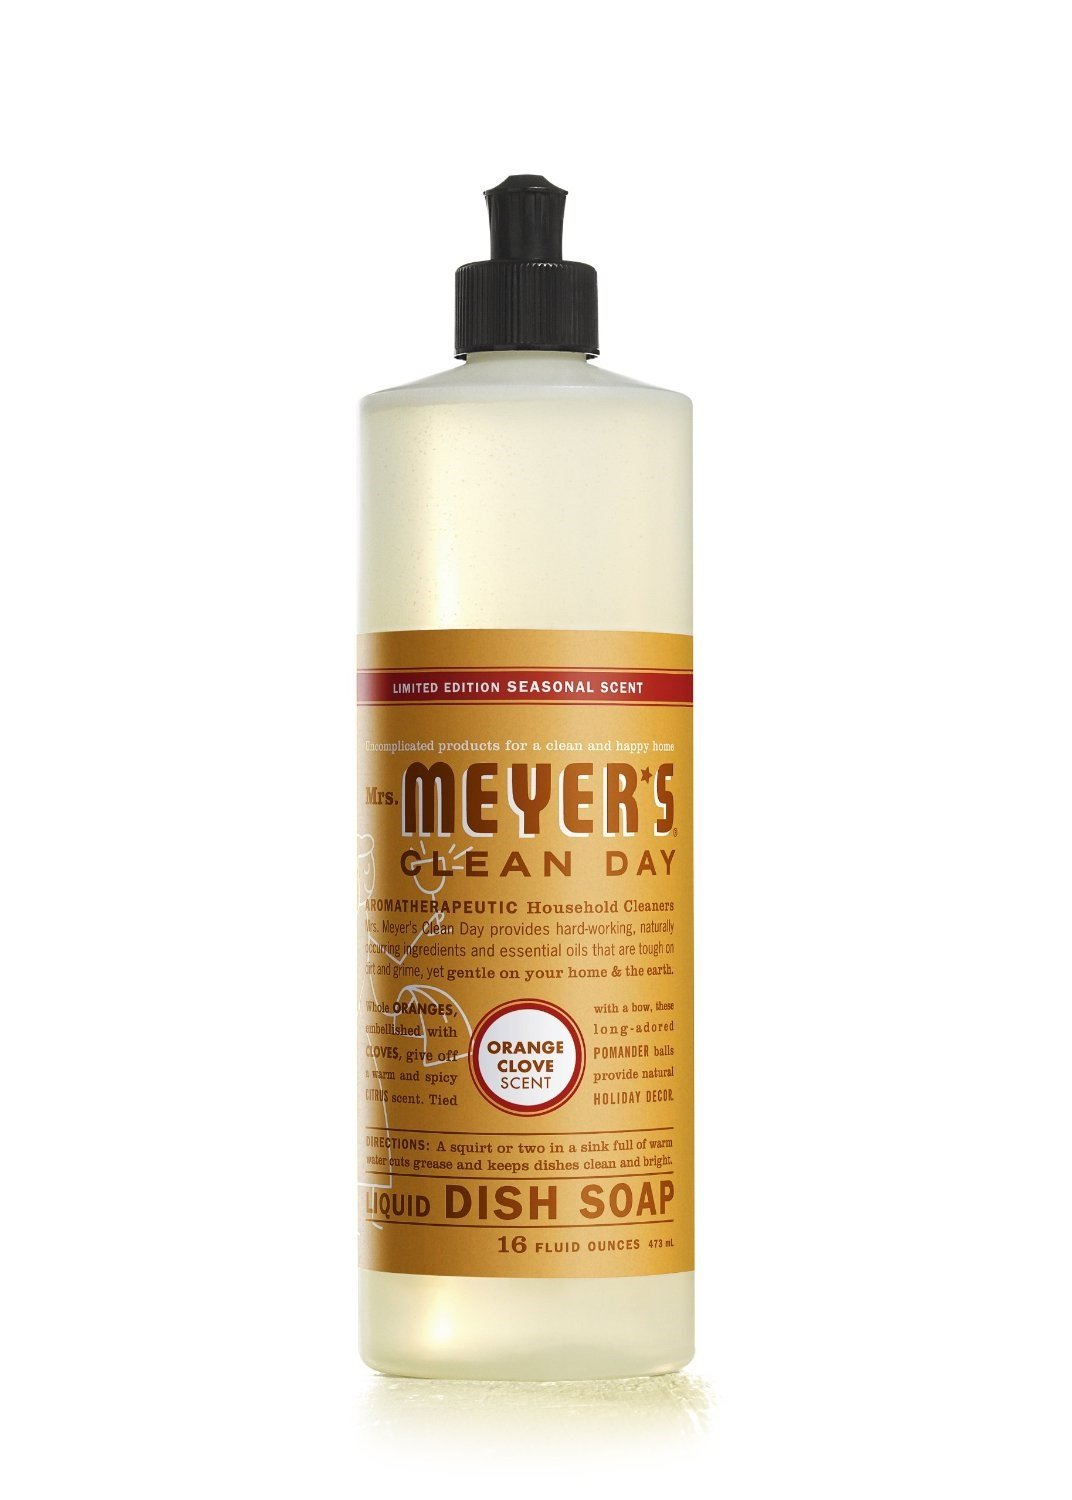 Mrs. Meyer's Liquid Dish Soap, Acorn Spice, 16 OZ by Mrs. Meyer's Clean Day